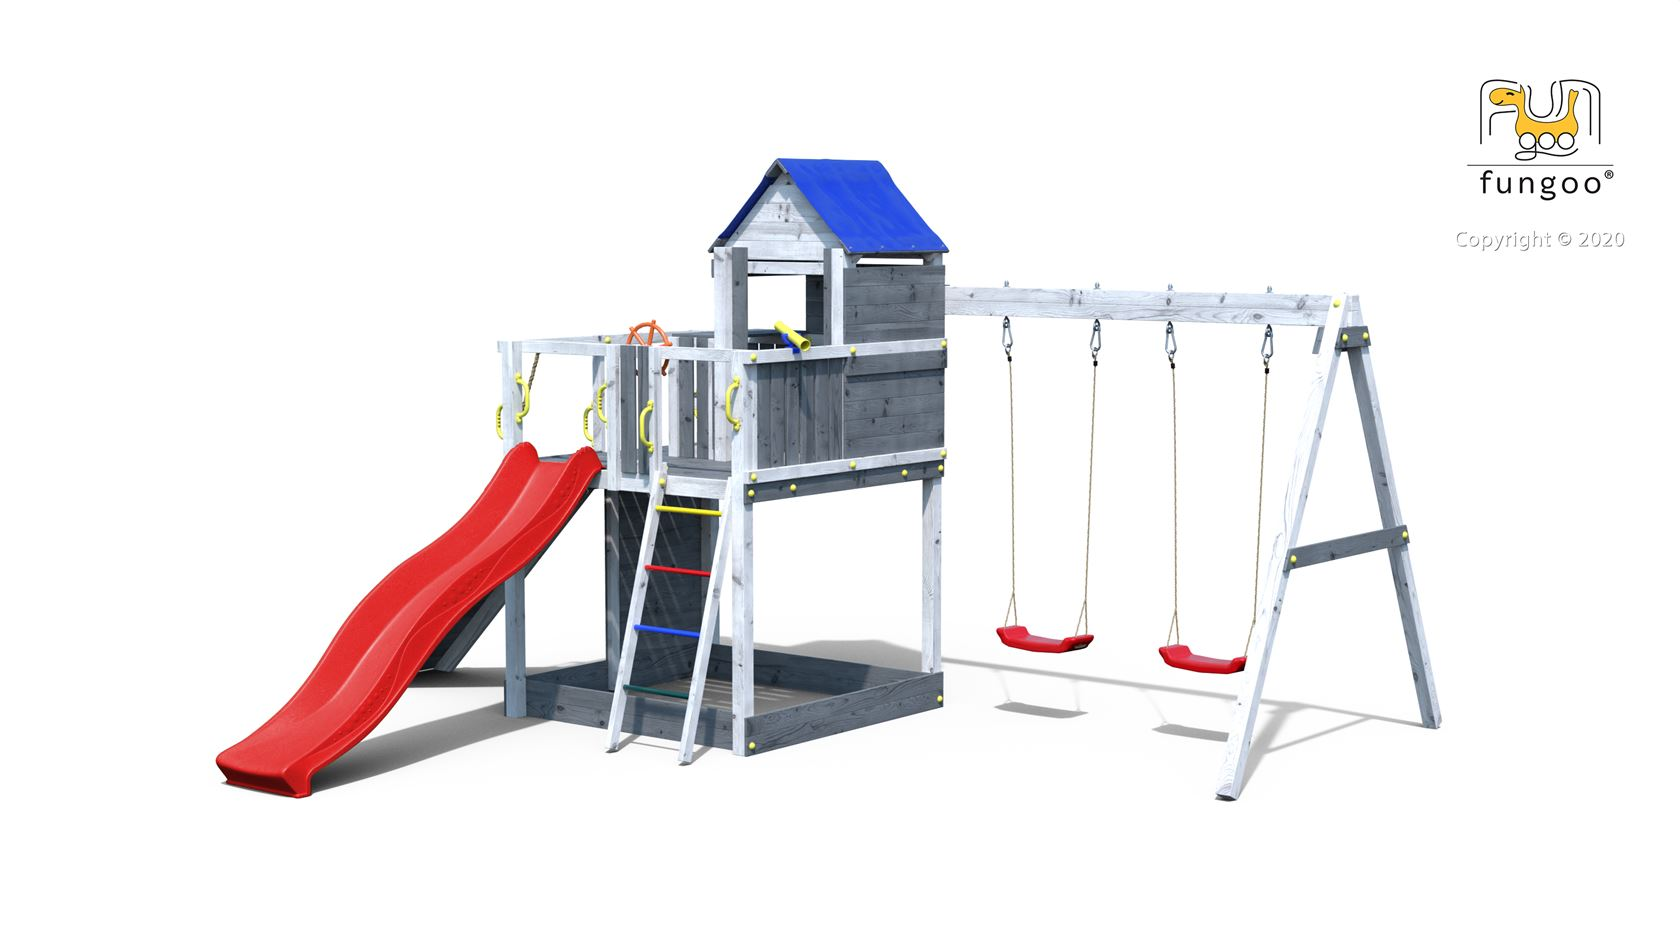 fungoo speelset treehouse 3 grey/white